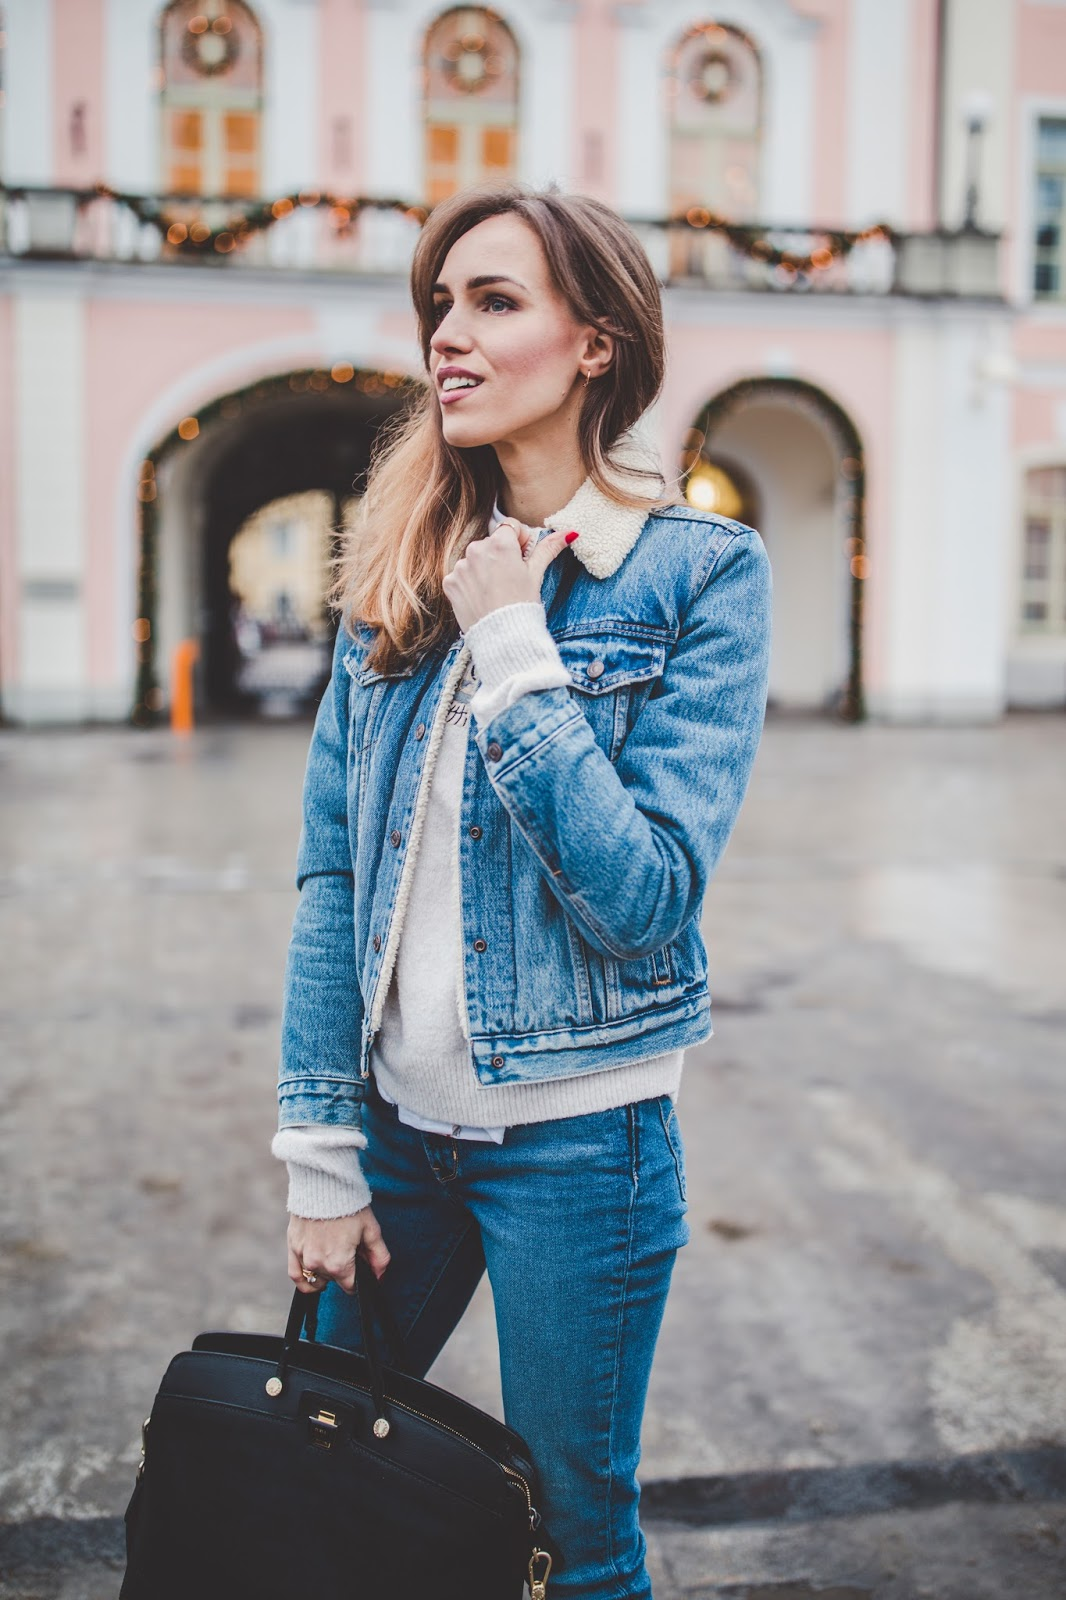 denim jacket jeans double denim winter outfit